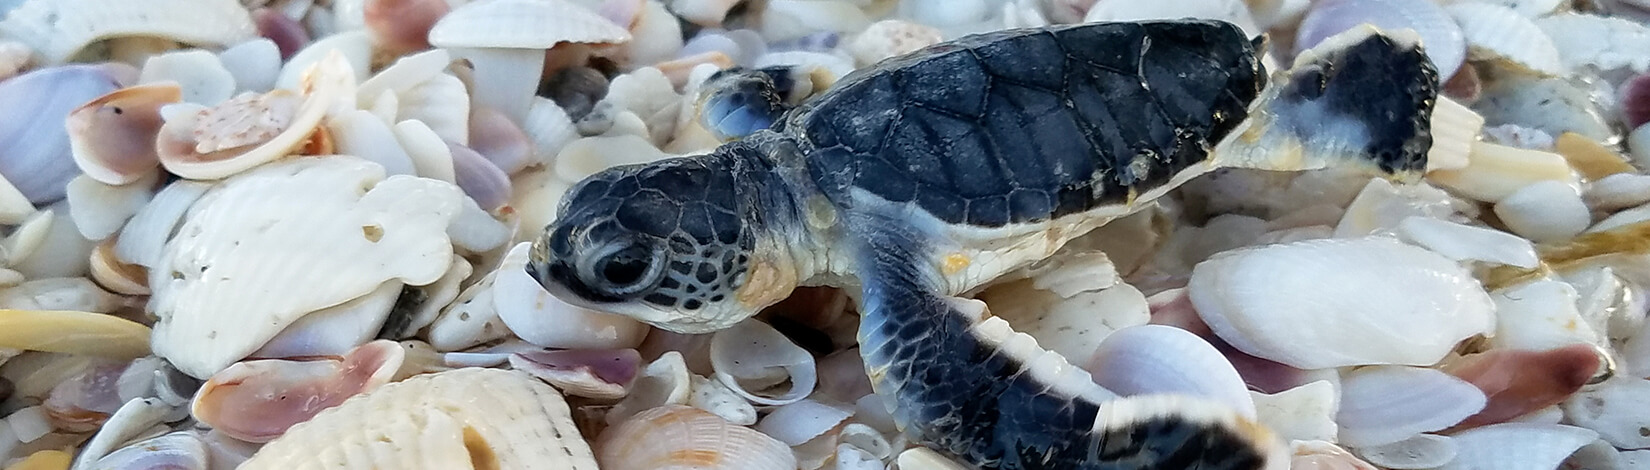 photo of a baby sea turtle with sea shells in the background